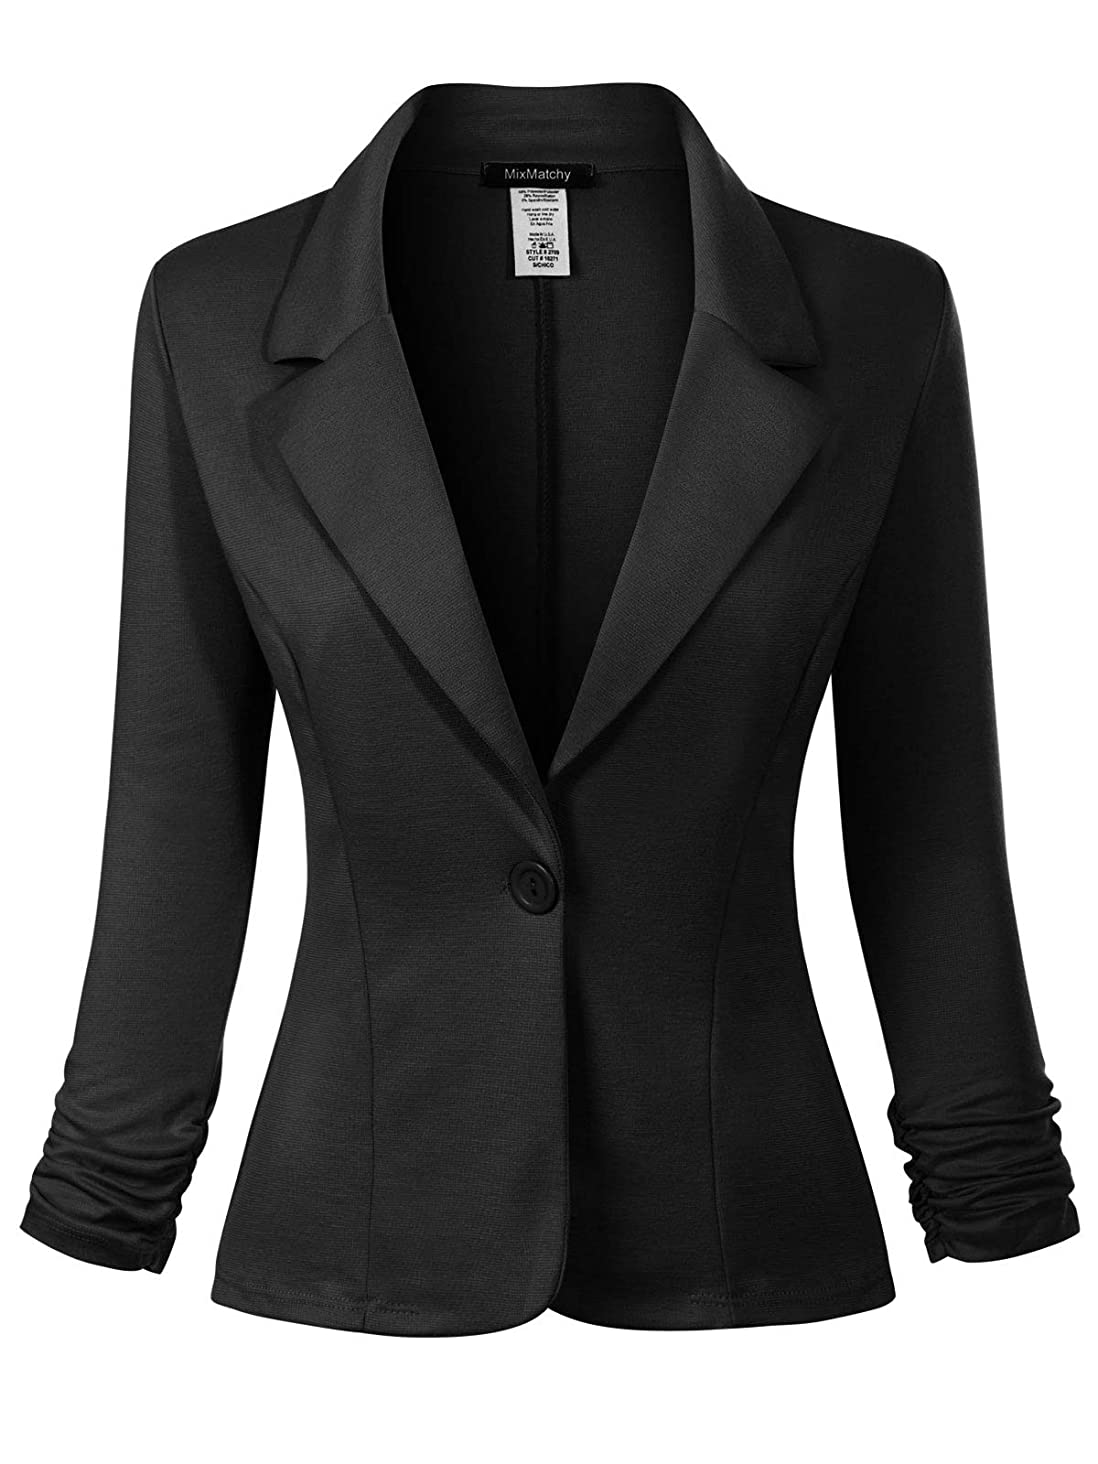 MixMatchy Women's Classic Casual Work Solid Color Knit Blazer